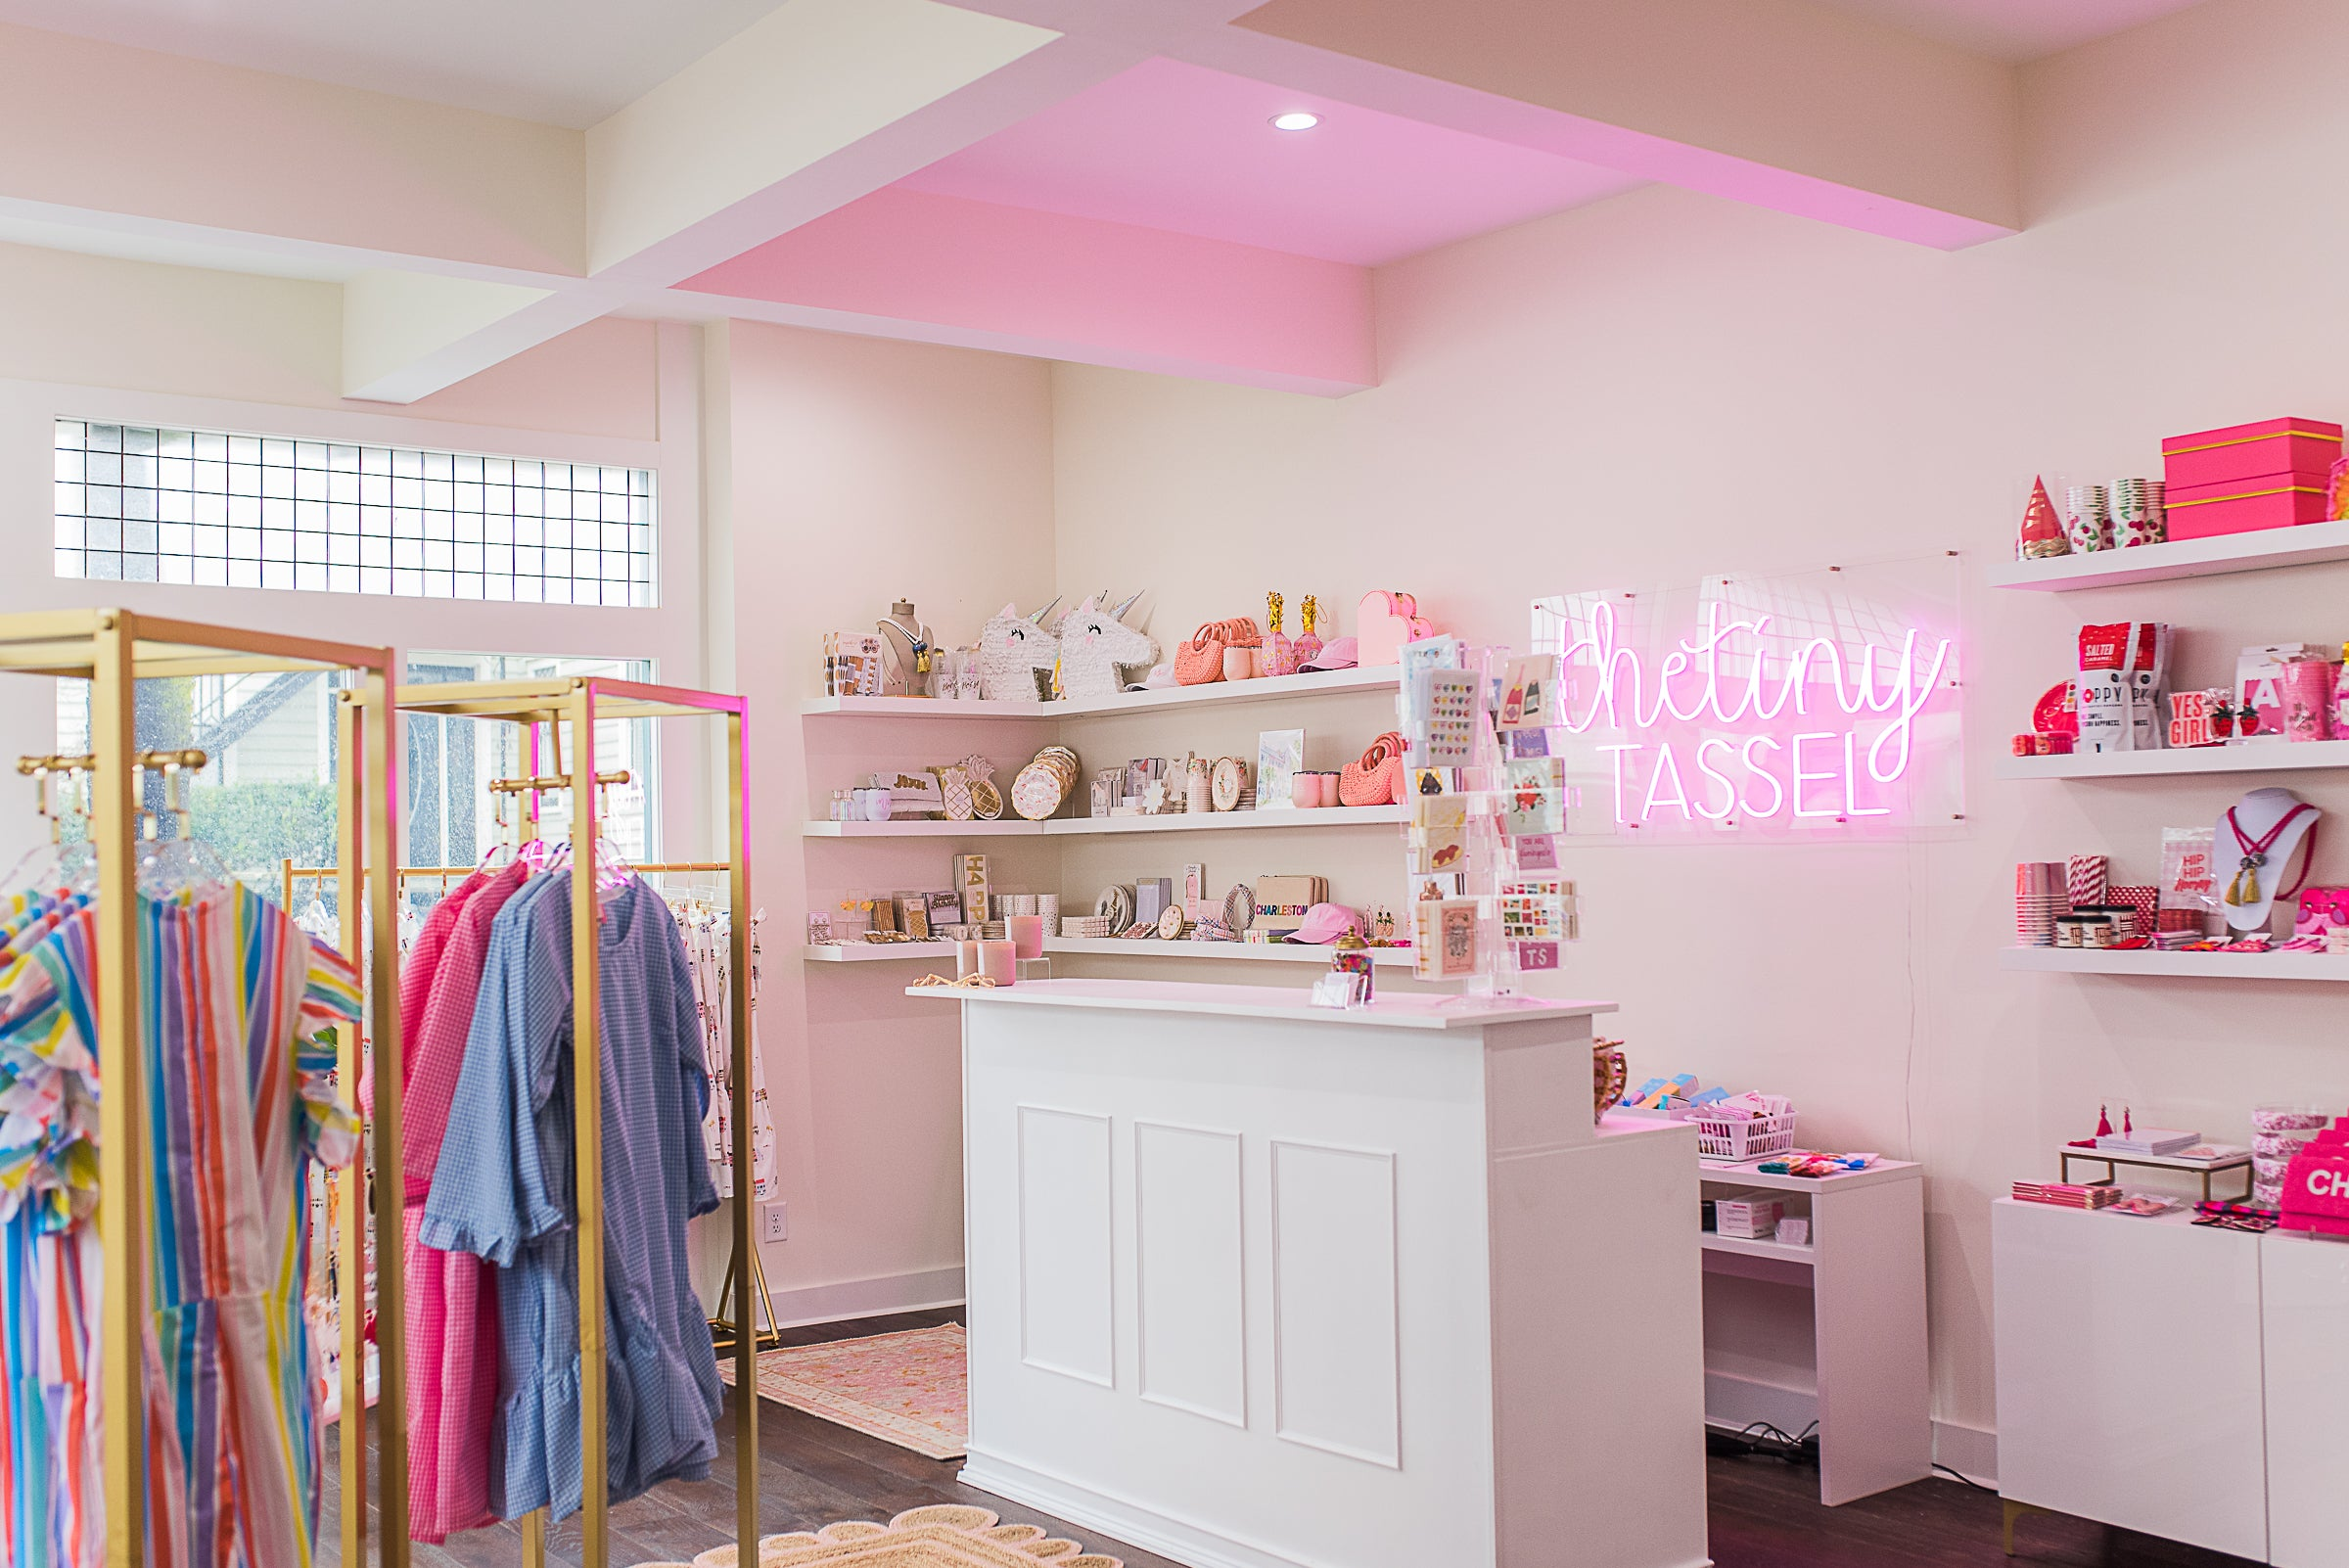 BuDhaGirl's April Store of the Month: The Tiny Tassel 4